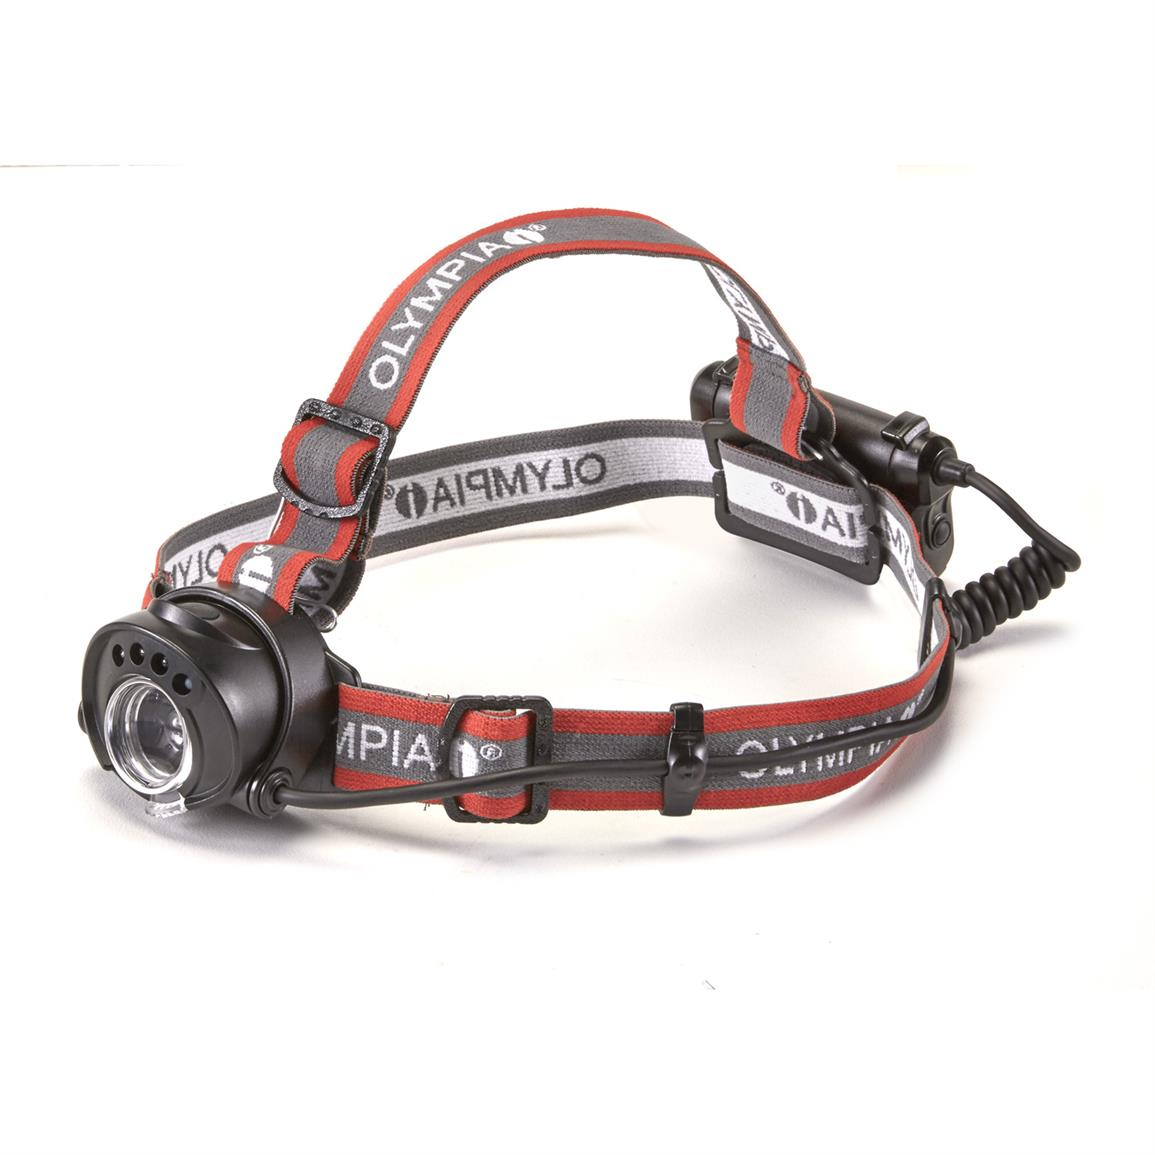 Olympia Explorer Series Motion Activated Headlamp, 100 Lumen